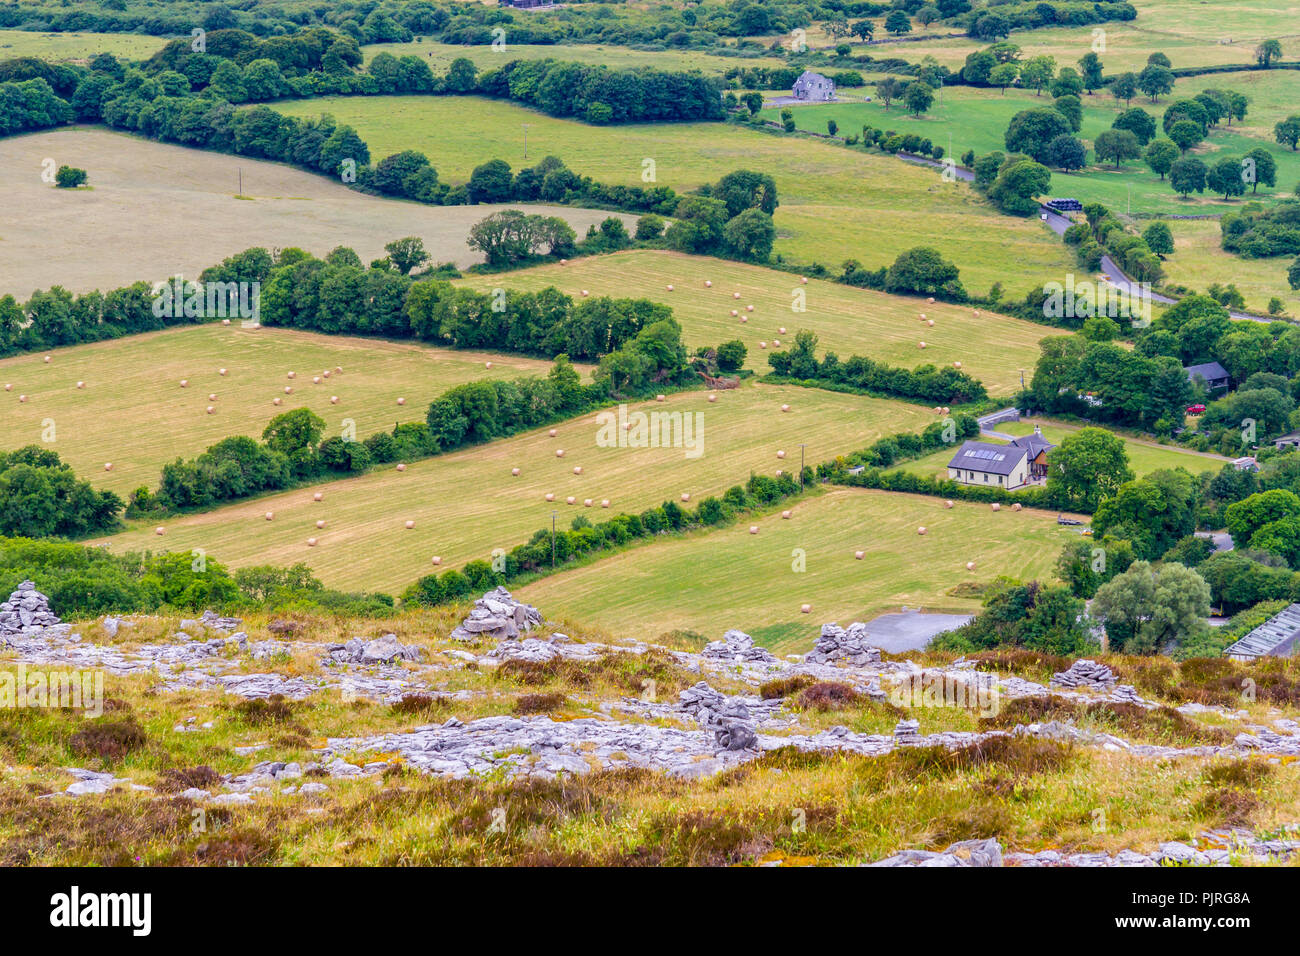 Farm field, mountain and vegetation in Ballyvaughan, Ireland - Stock Image